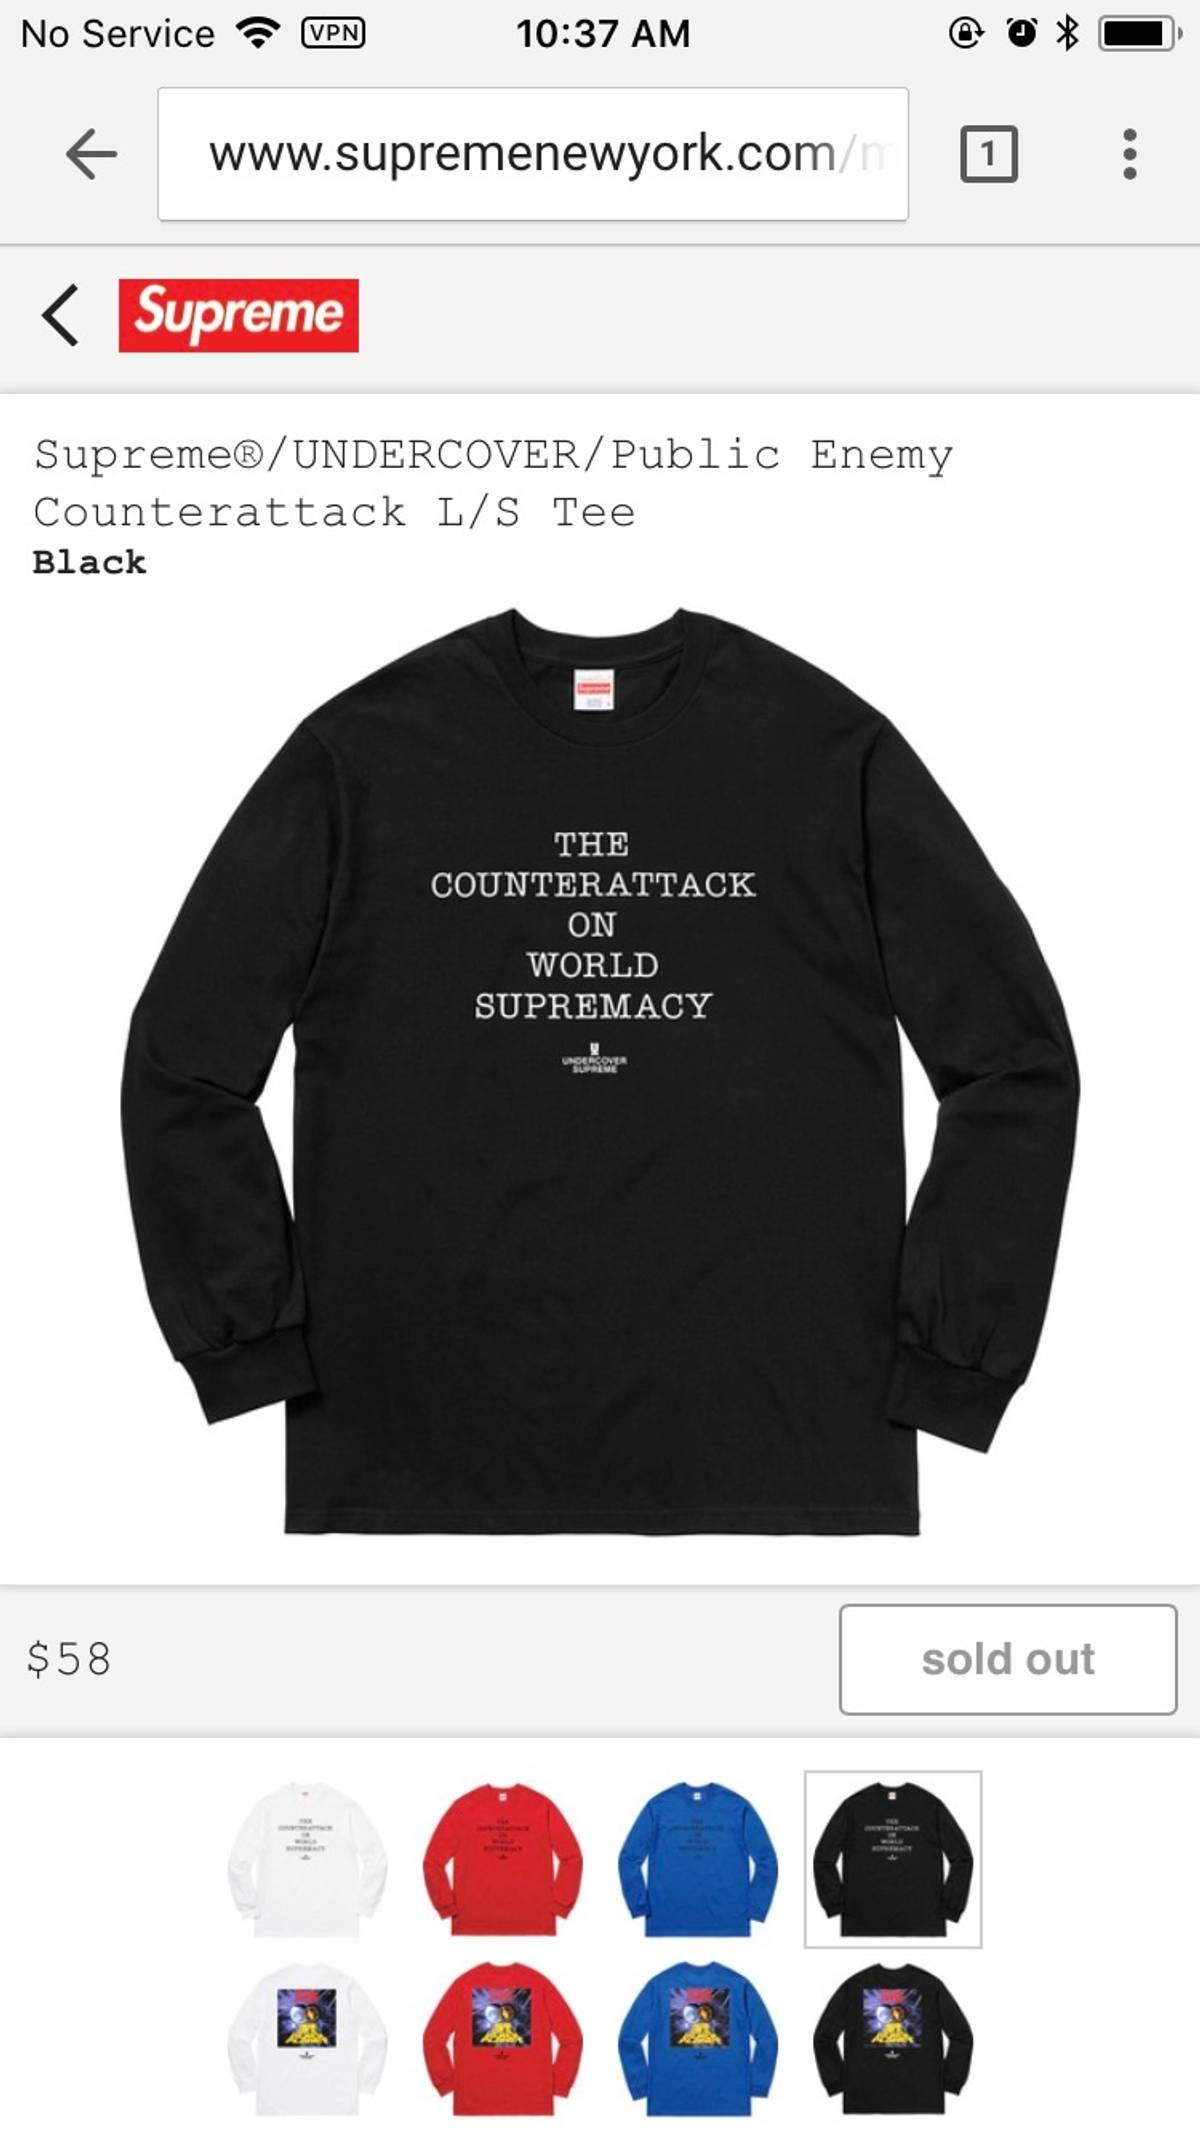 61626f74e2de Supreme × Undercover × Public Enemy ×. Counter Attack LS